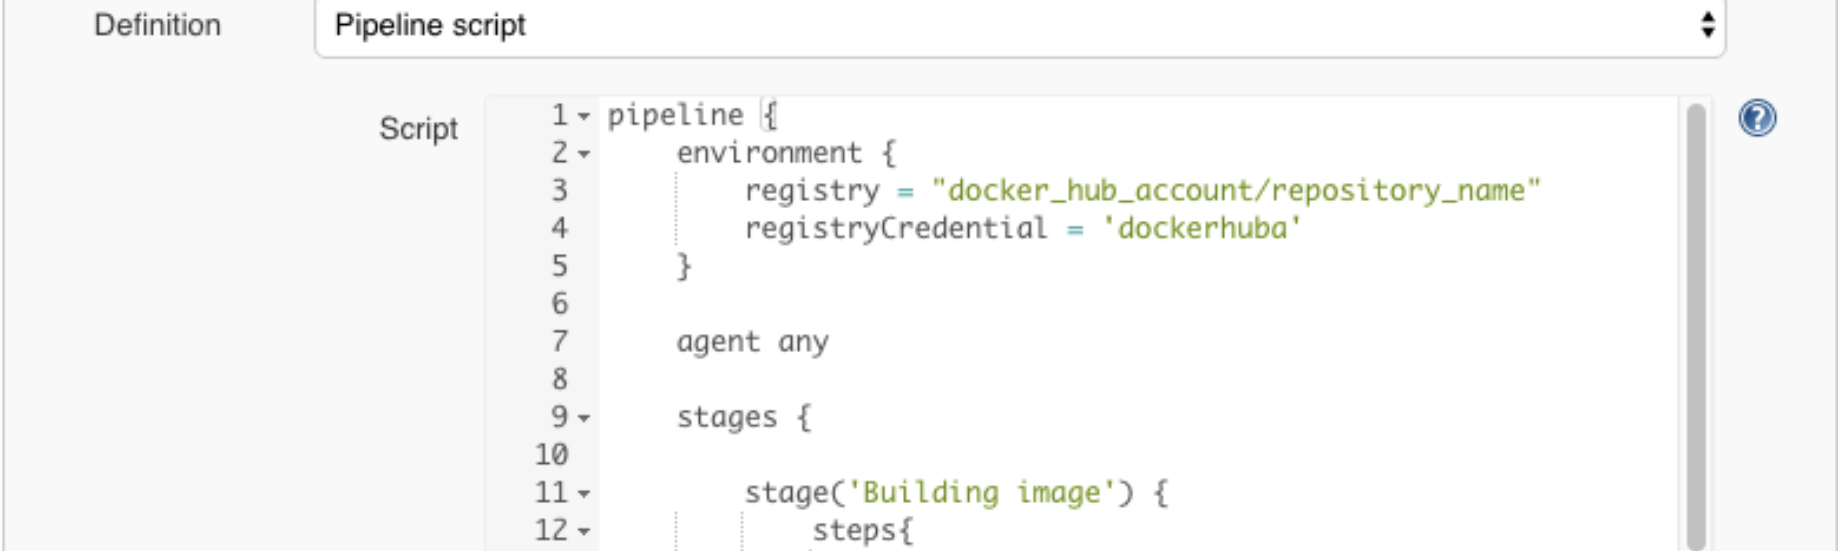 Jenkins Building Docker Image and Sending to Registry